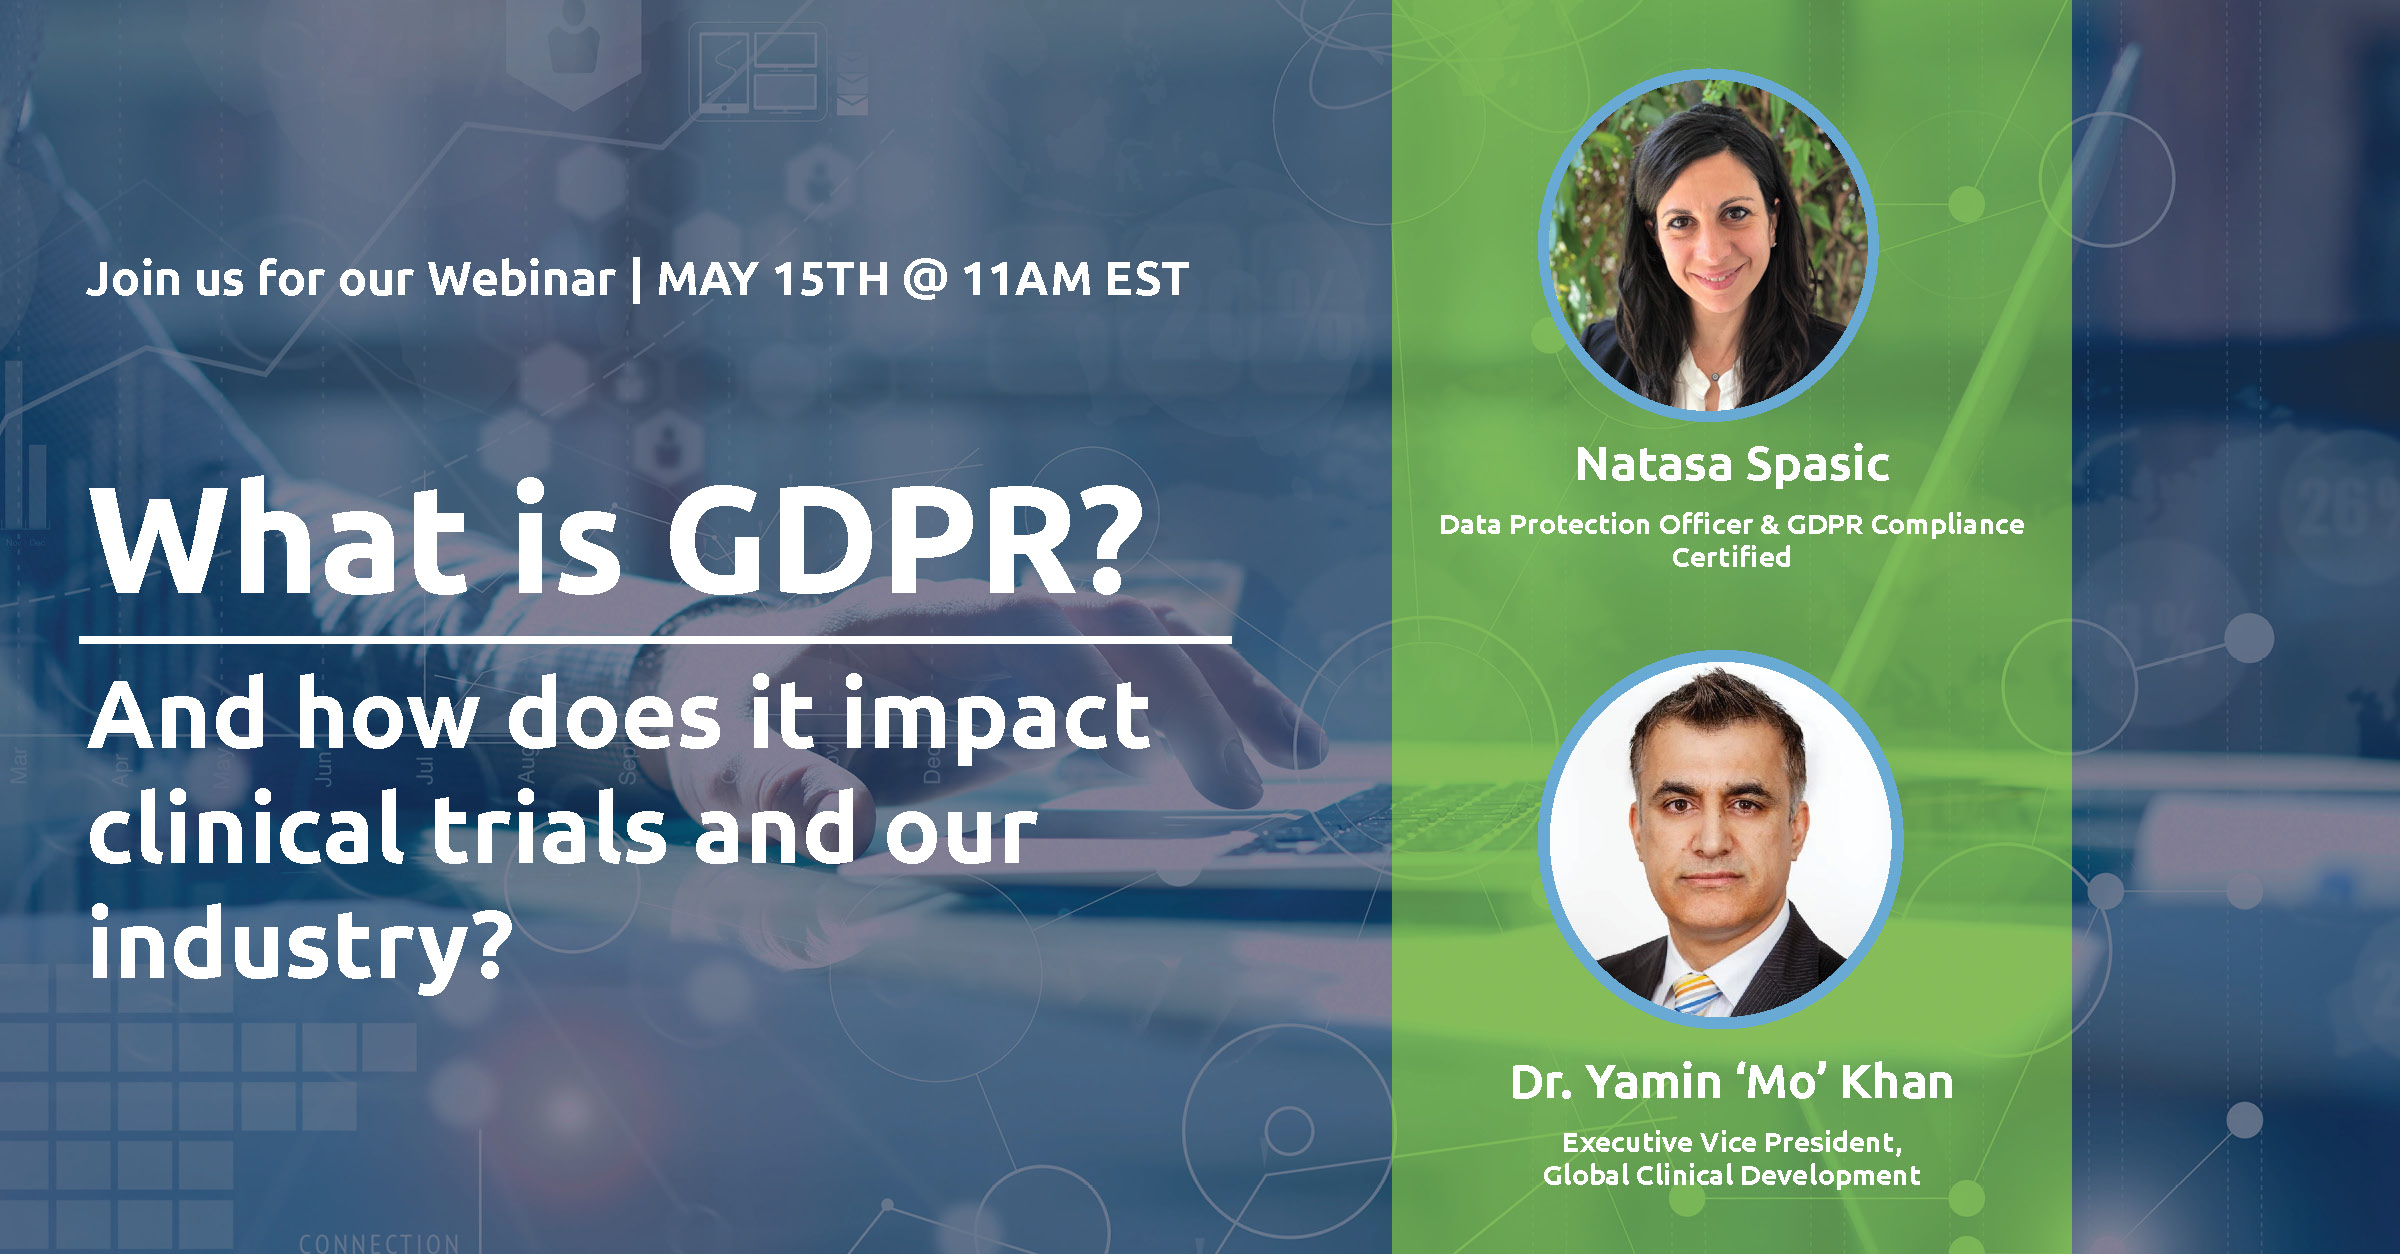 Join us for our Webinar